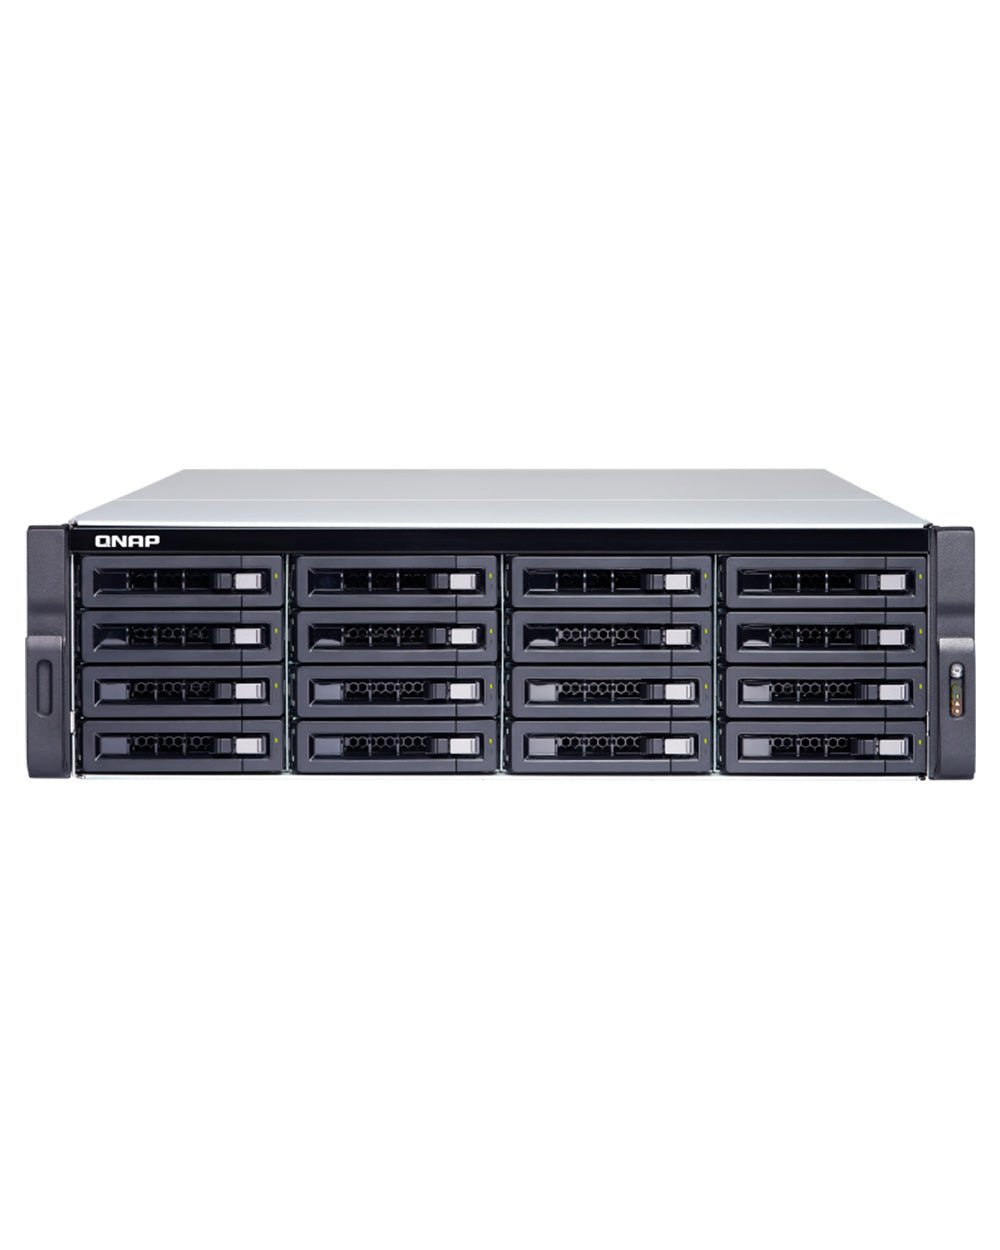 QNAP TS-1683XU-RP-E2124-16G Diskless 16 Bay NAS only $5099.00 from QNAP Direct